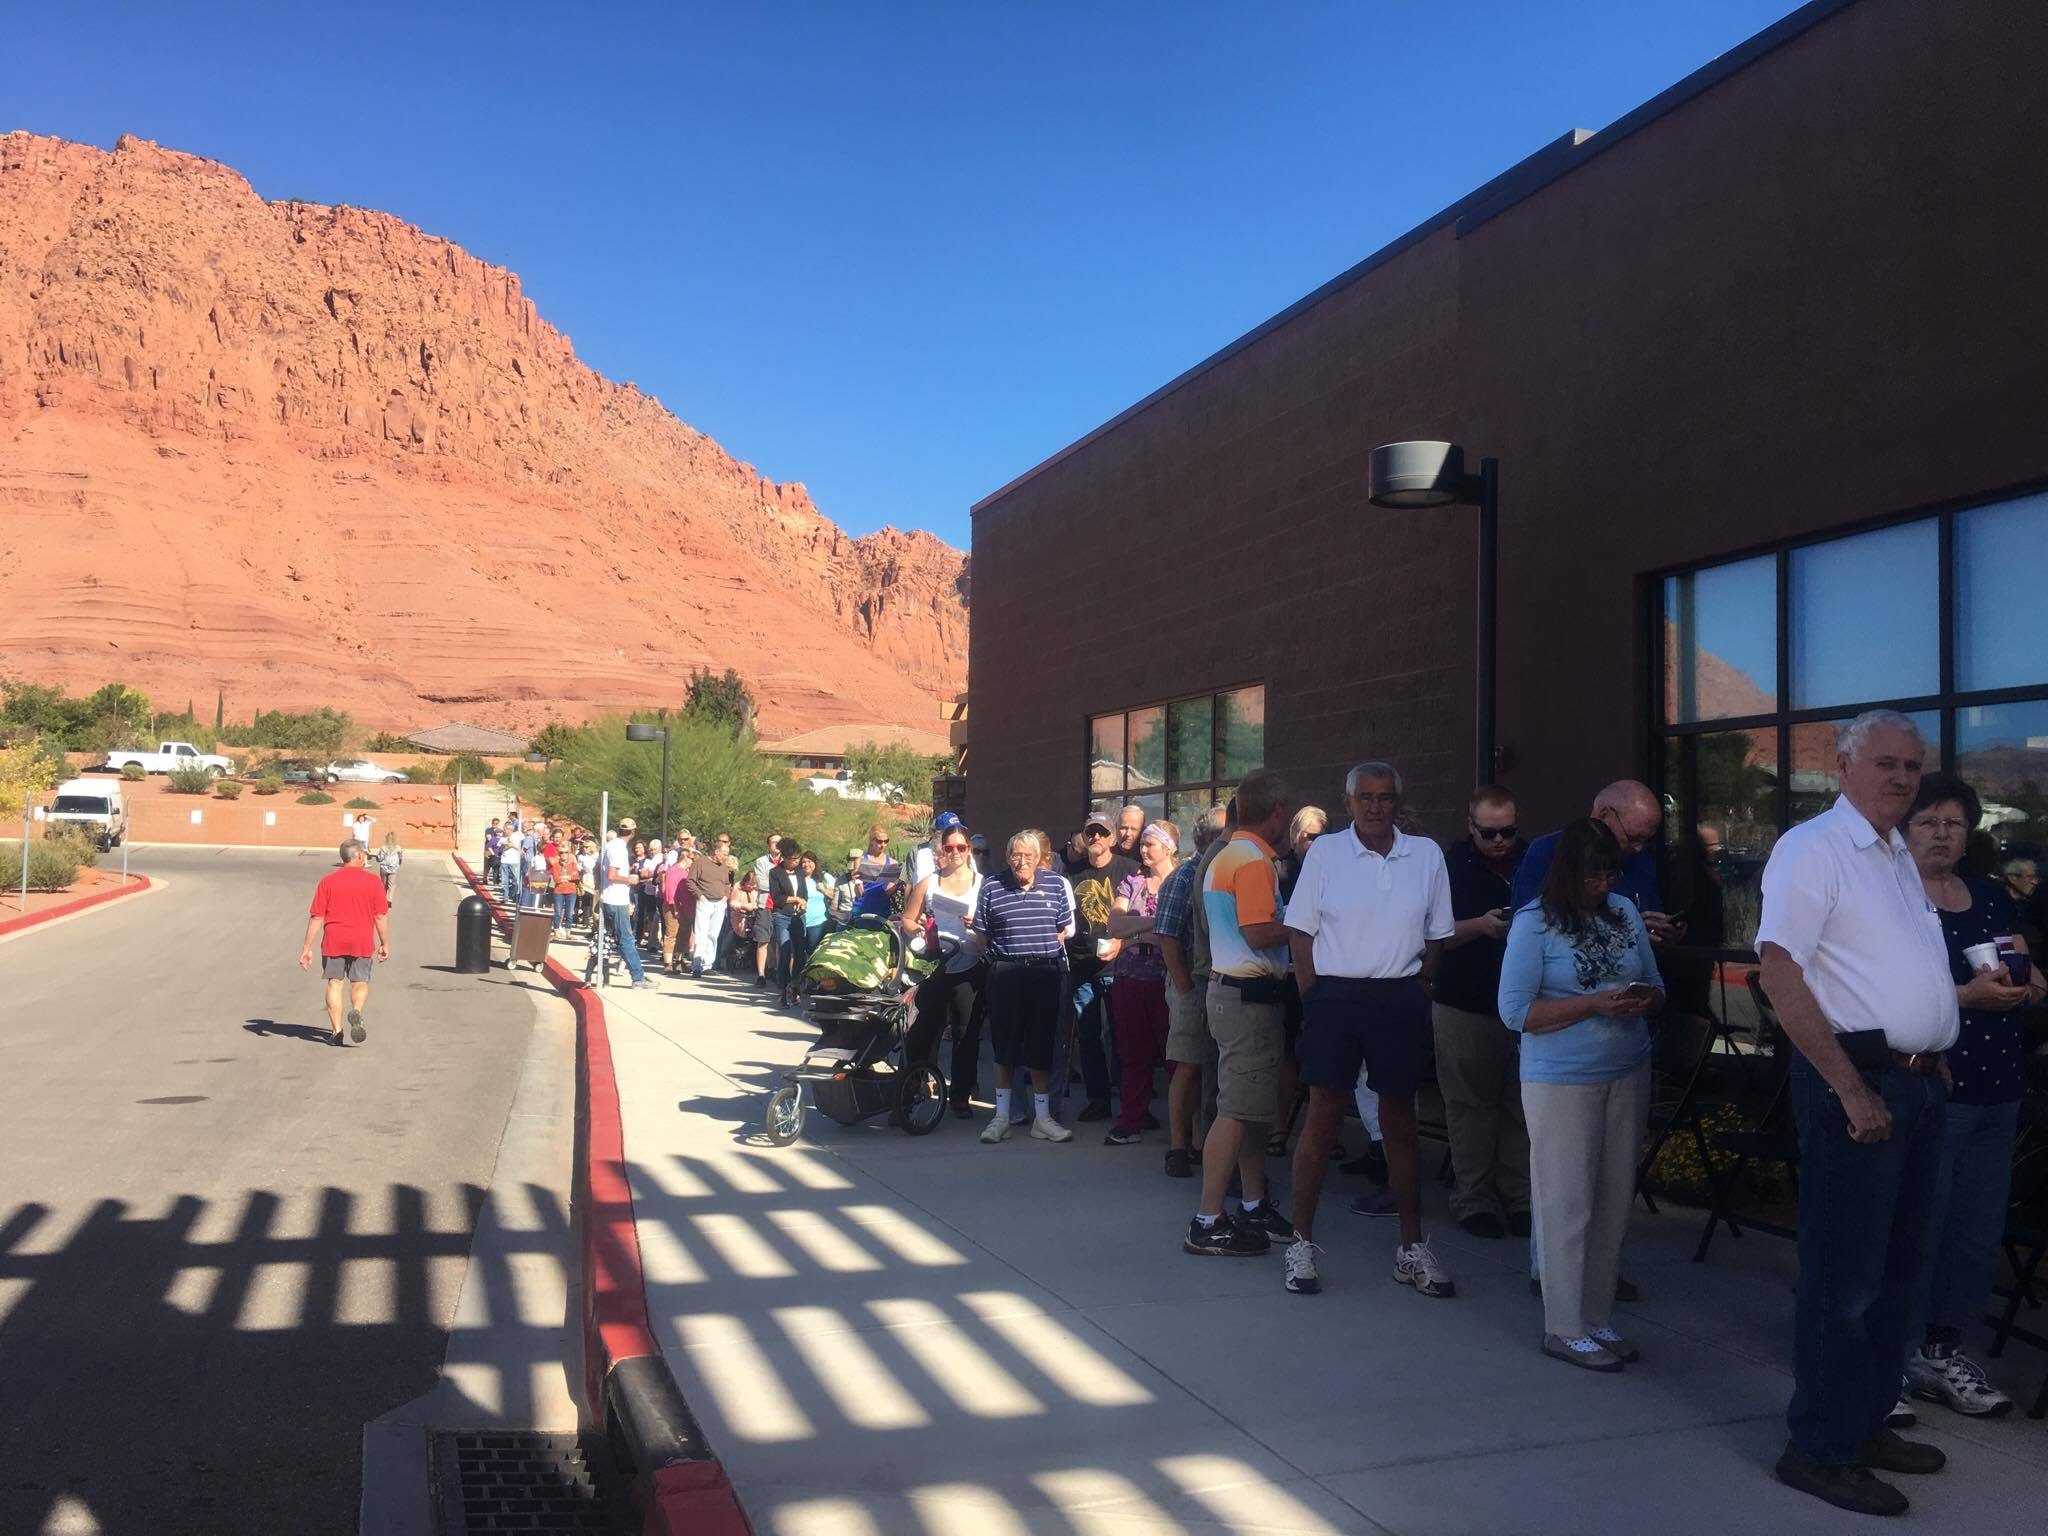 Lines of voters are long at the Southern Utah Veterans Home polling place in Ivins around 11:11 a.m. Tuesday. Electronic voting machines are still not functioning and voting is being done by paper ballots. Ivins, Utah, Nov. 8, 2016 | Photo by Hollie Reina, St. George News